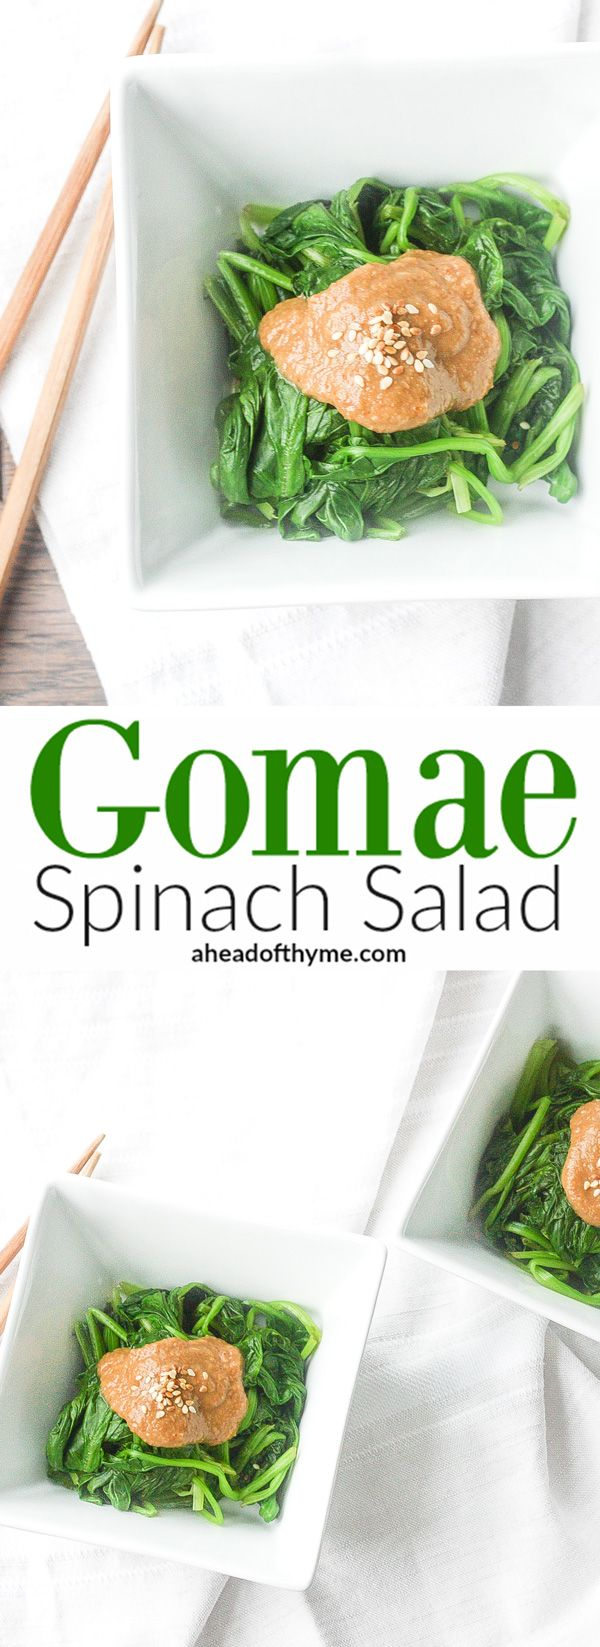 Gomae Spinach Salad: This traditional Japanese side dish is loaded with spinach and seasoned with a delicious, creamy sesame dressing | aheadofthyme.com via @aheadofthyme